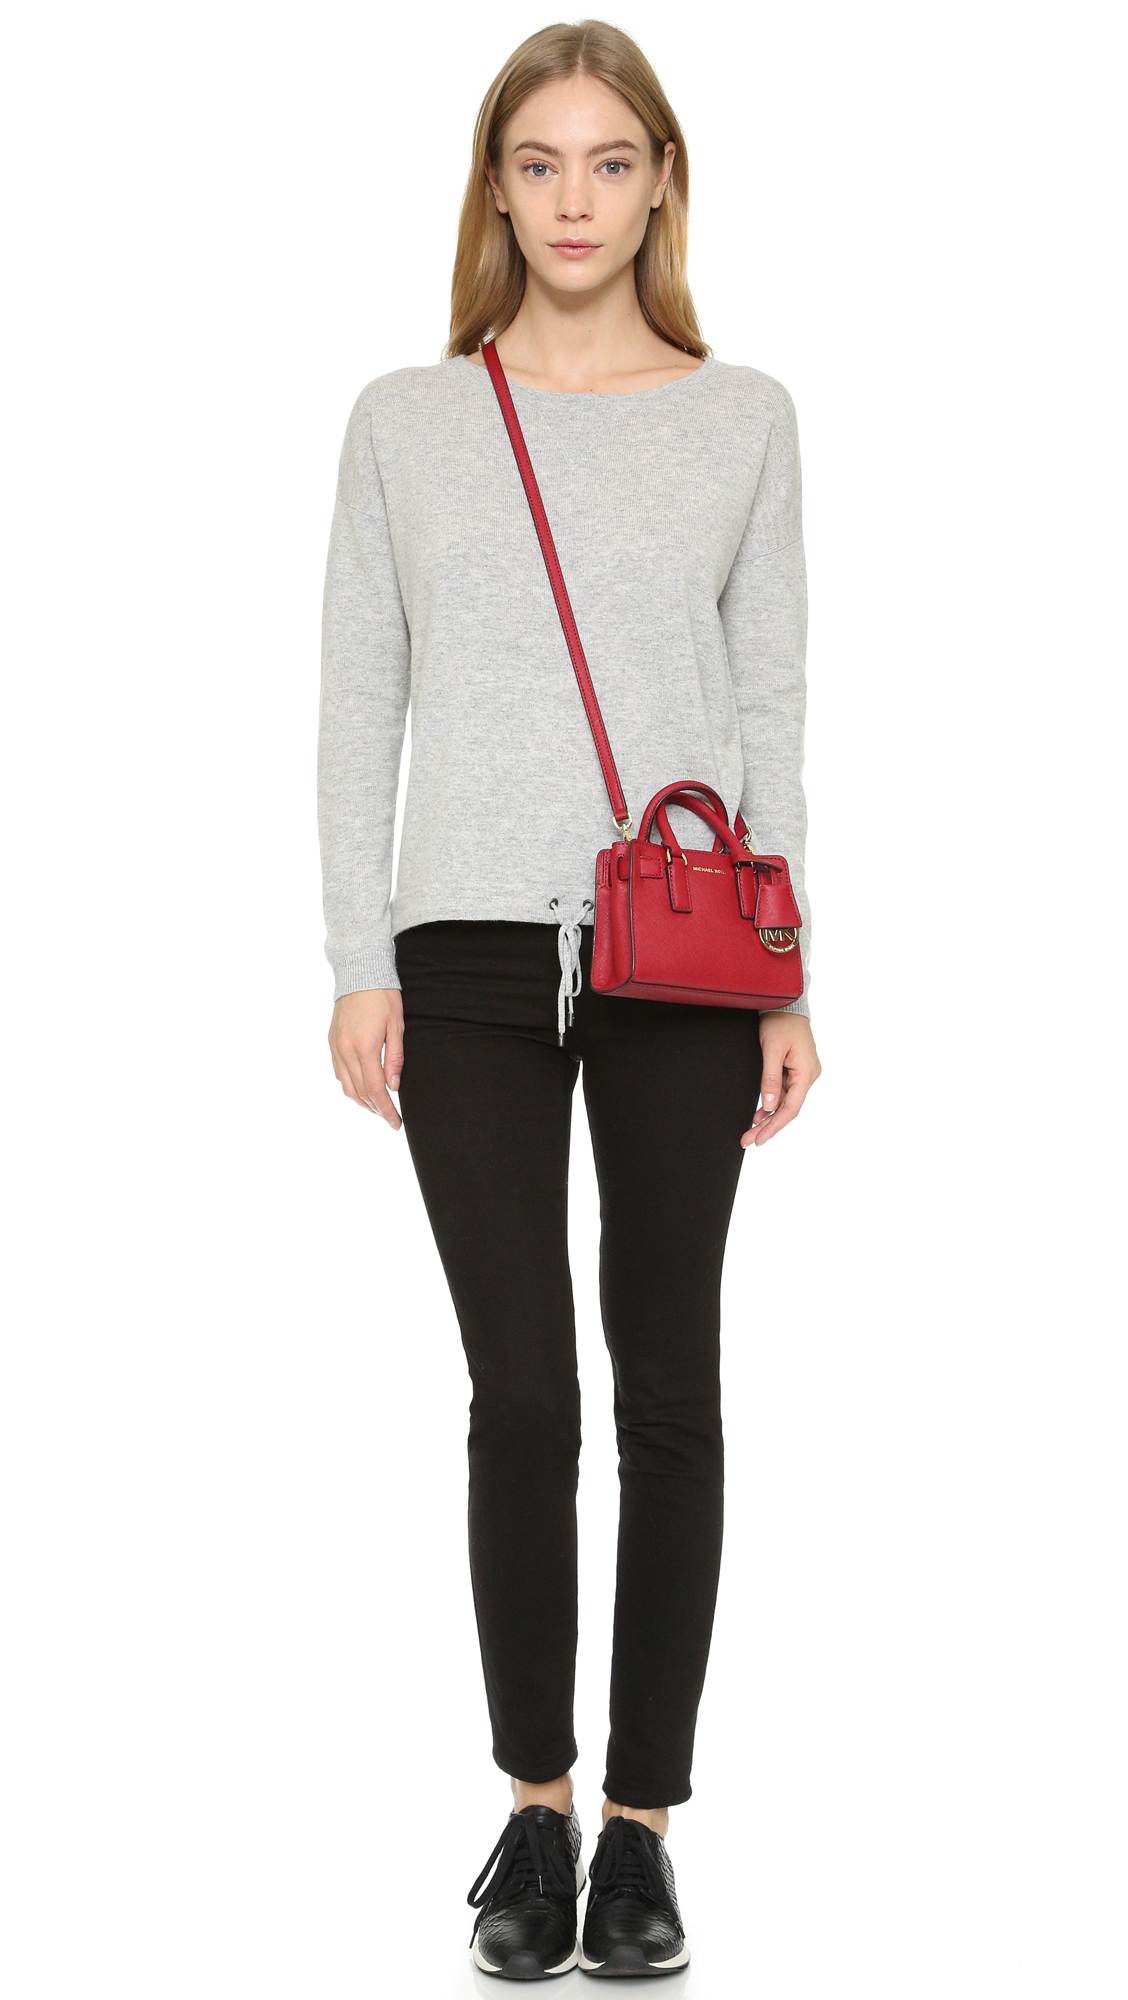 327753f9c94d Gallery. Previously sold at: Shopbop · Women's Michael By Michael Kors ...